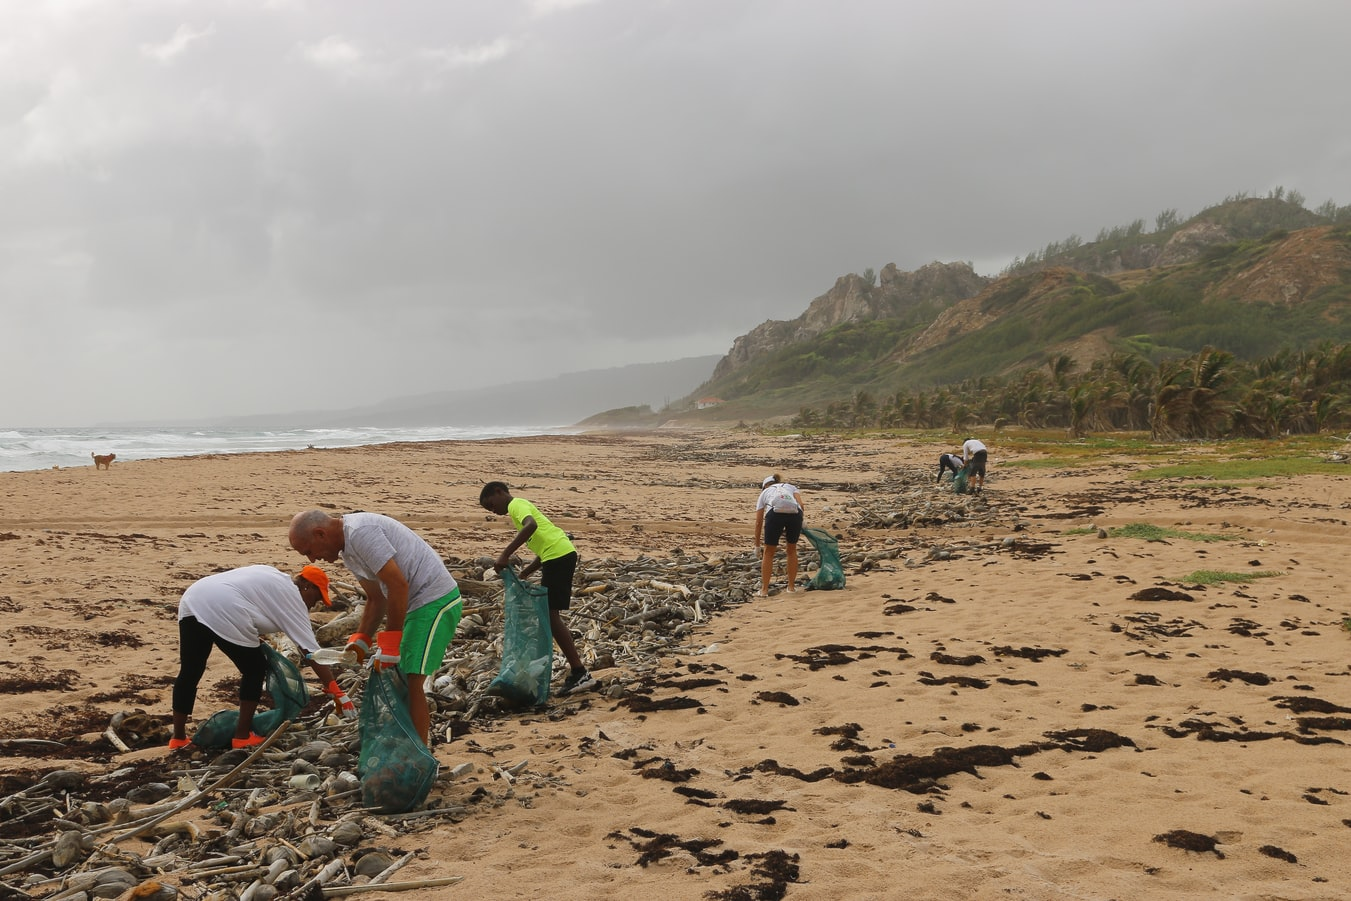 a group of people cleaning up trash on a beach